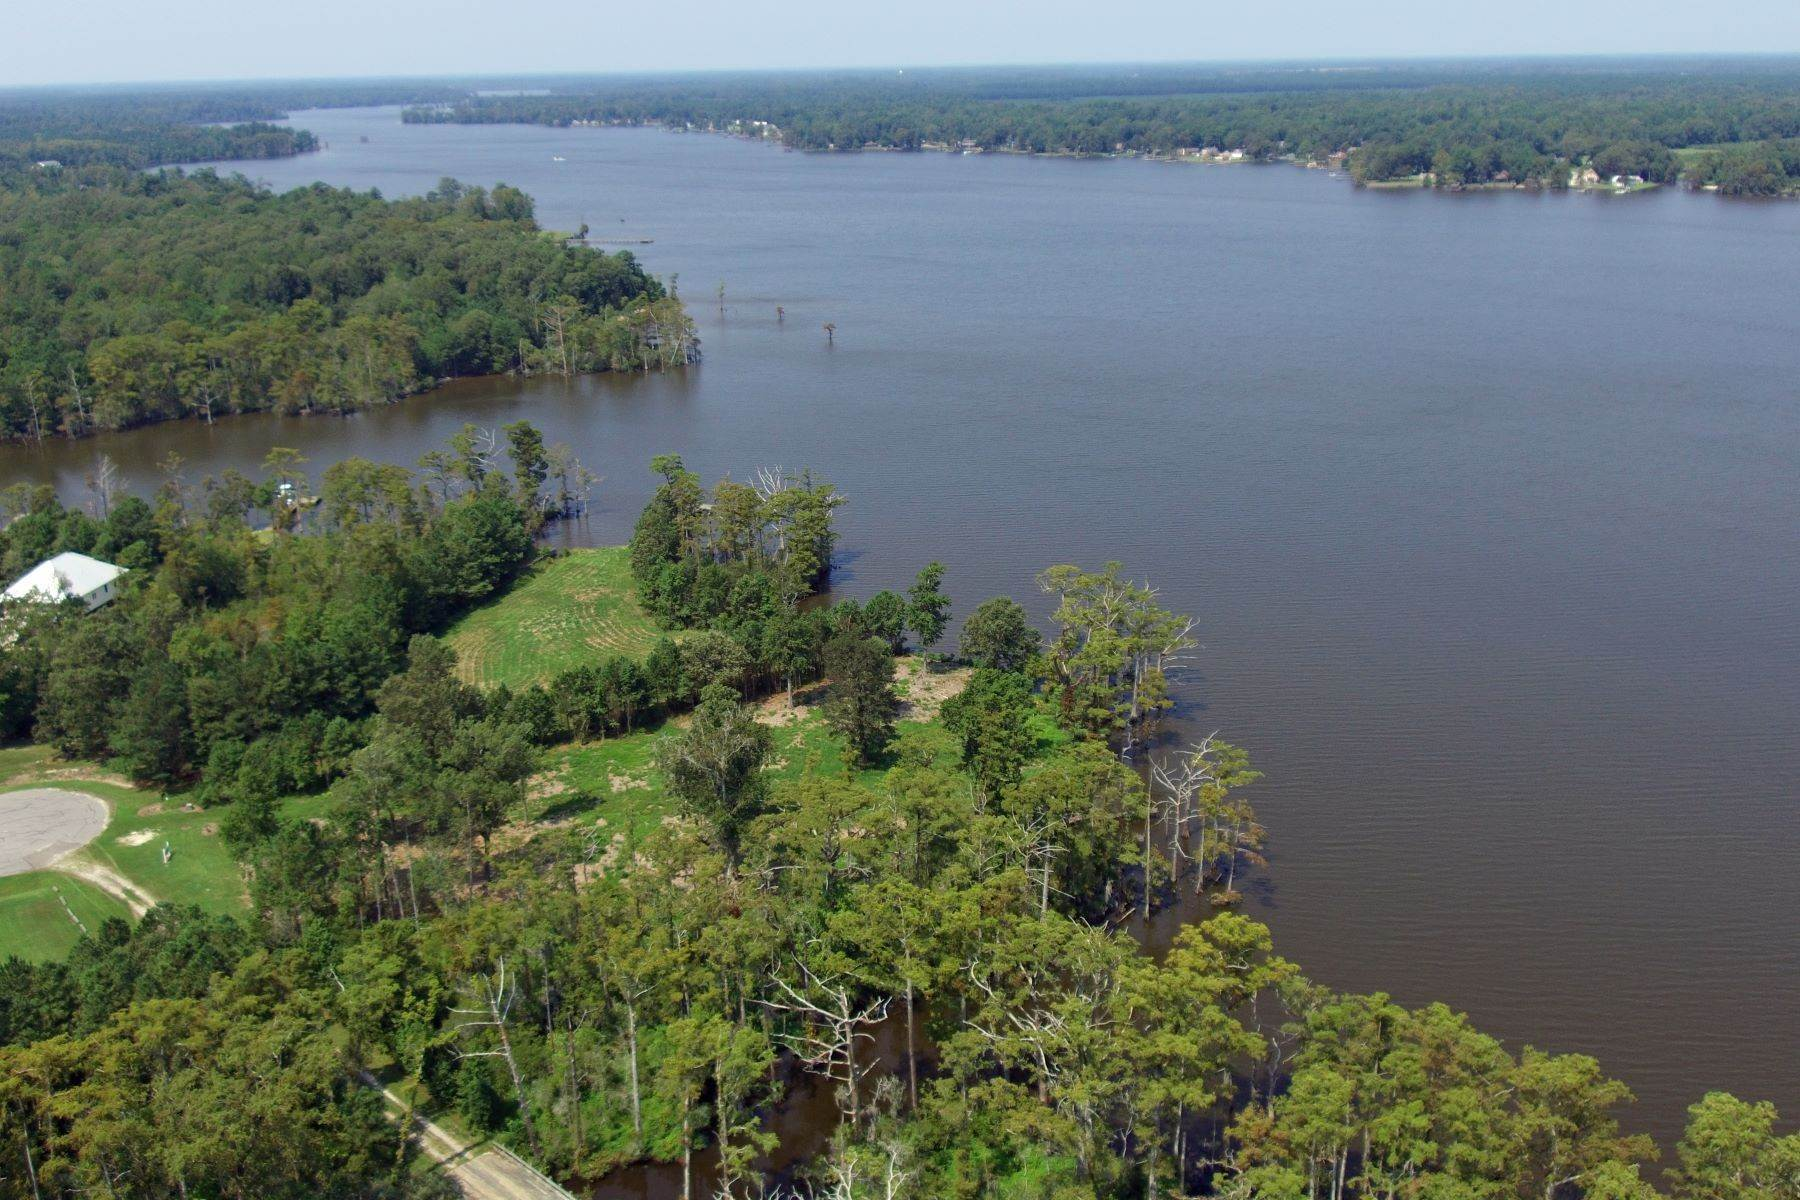 Land for Sale at Osprey Drive on Yeopim River 236 Osprey Drive Edenton, North Carolina 27932 United States